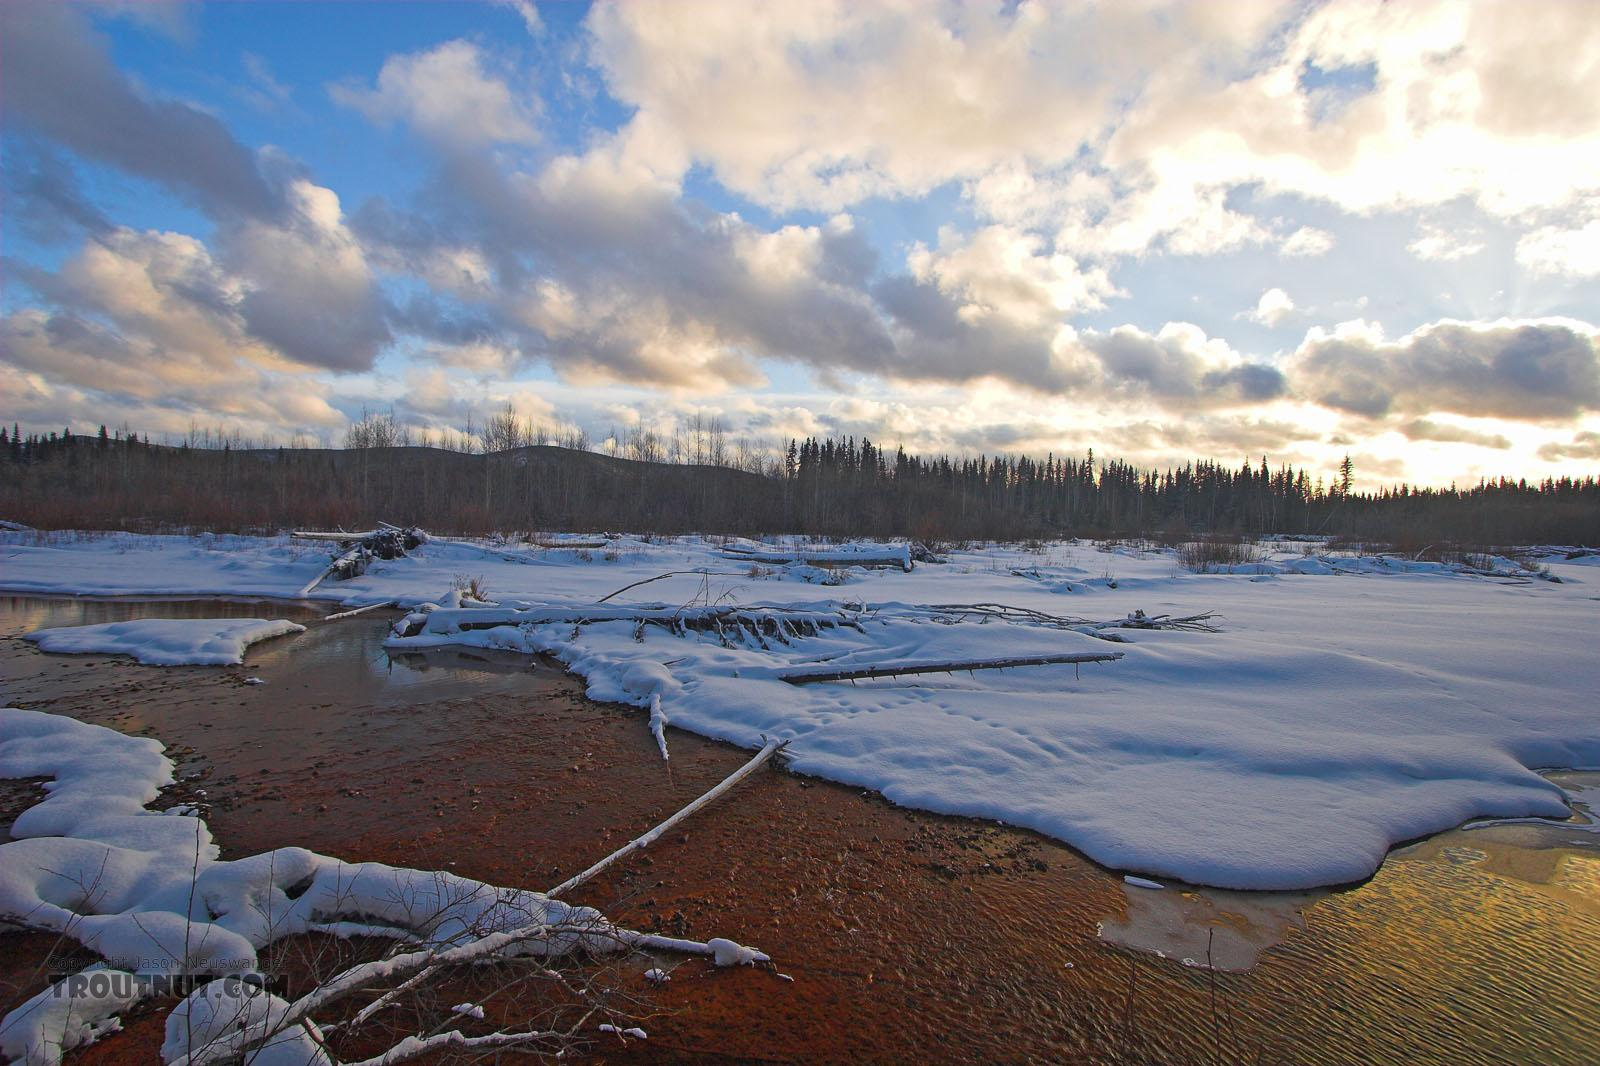 This is not a sunset picture, but a midday picture in Alaska in the winter.  The sun is low in the sky all day at that time of year. From the Chena River in Alaska.